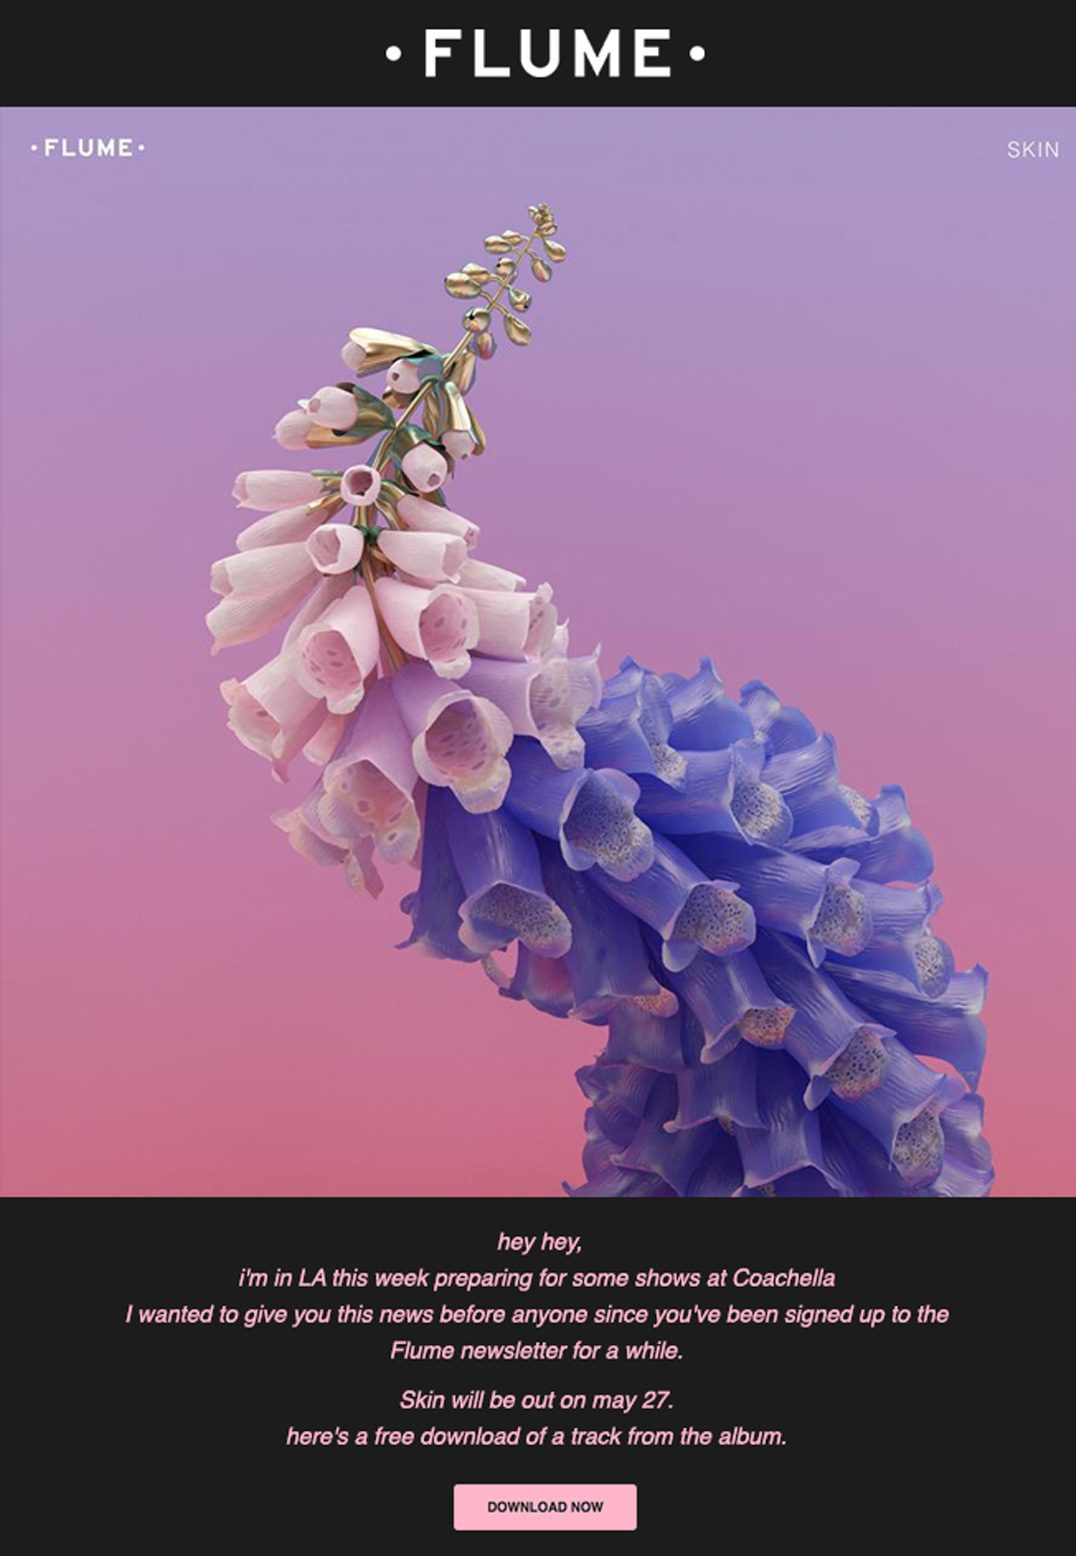 Flume email example